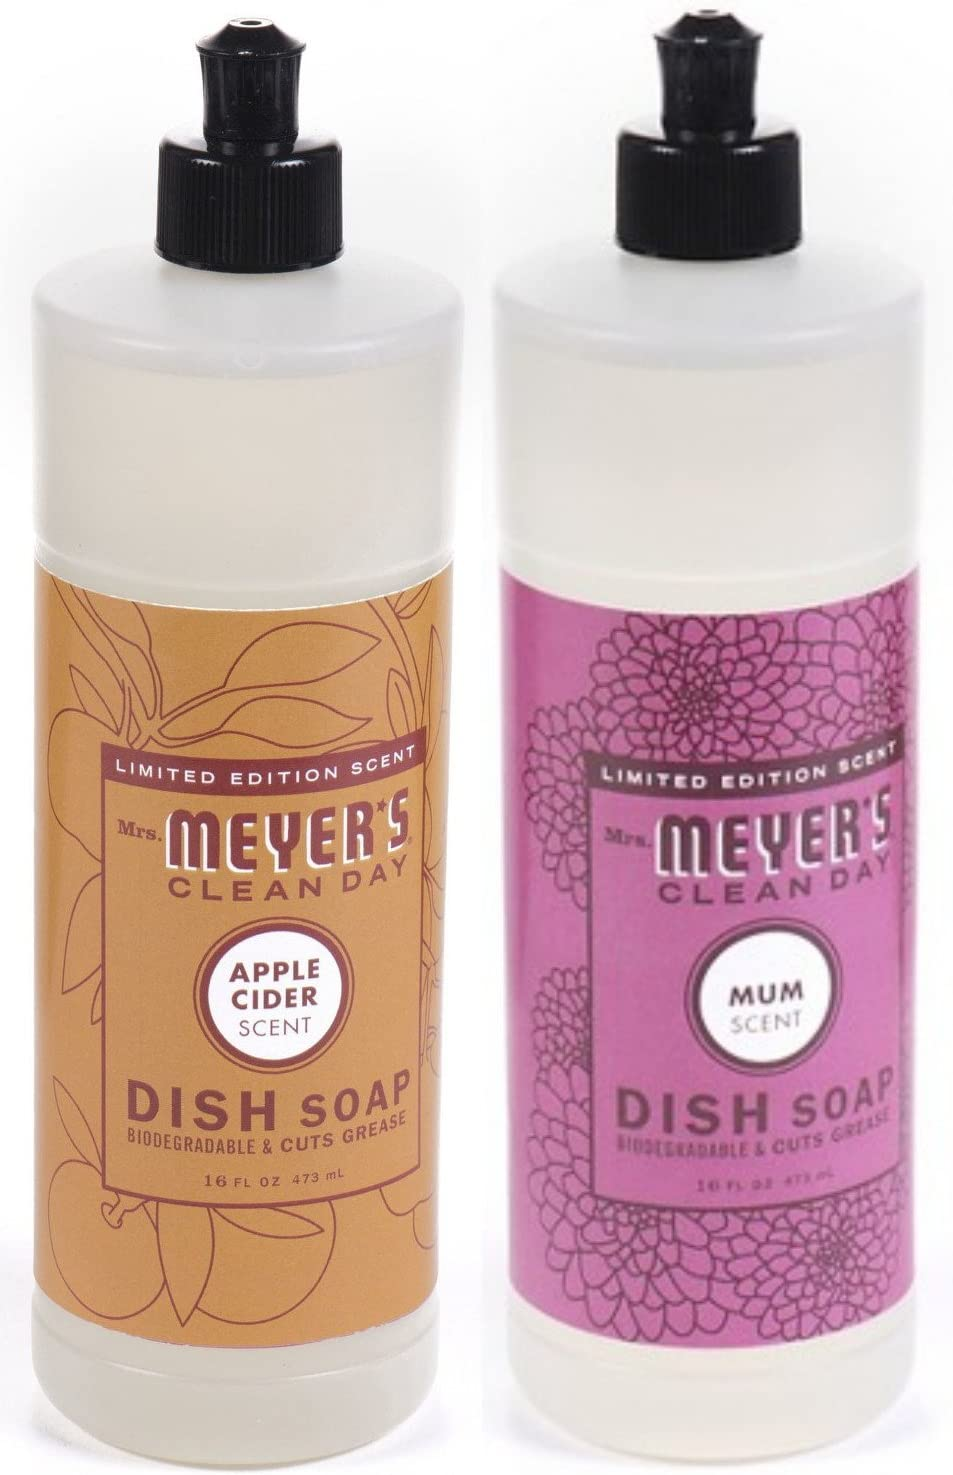 Mrs. Meyer's Liquid Dish Soap Variety Pack, 1 Apple Cider, 1 Mum, 1 CT